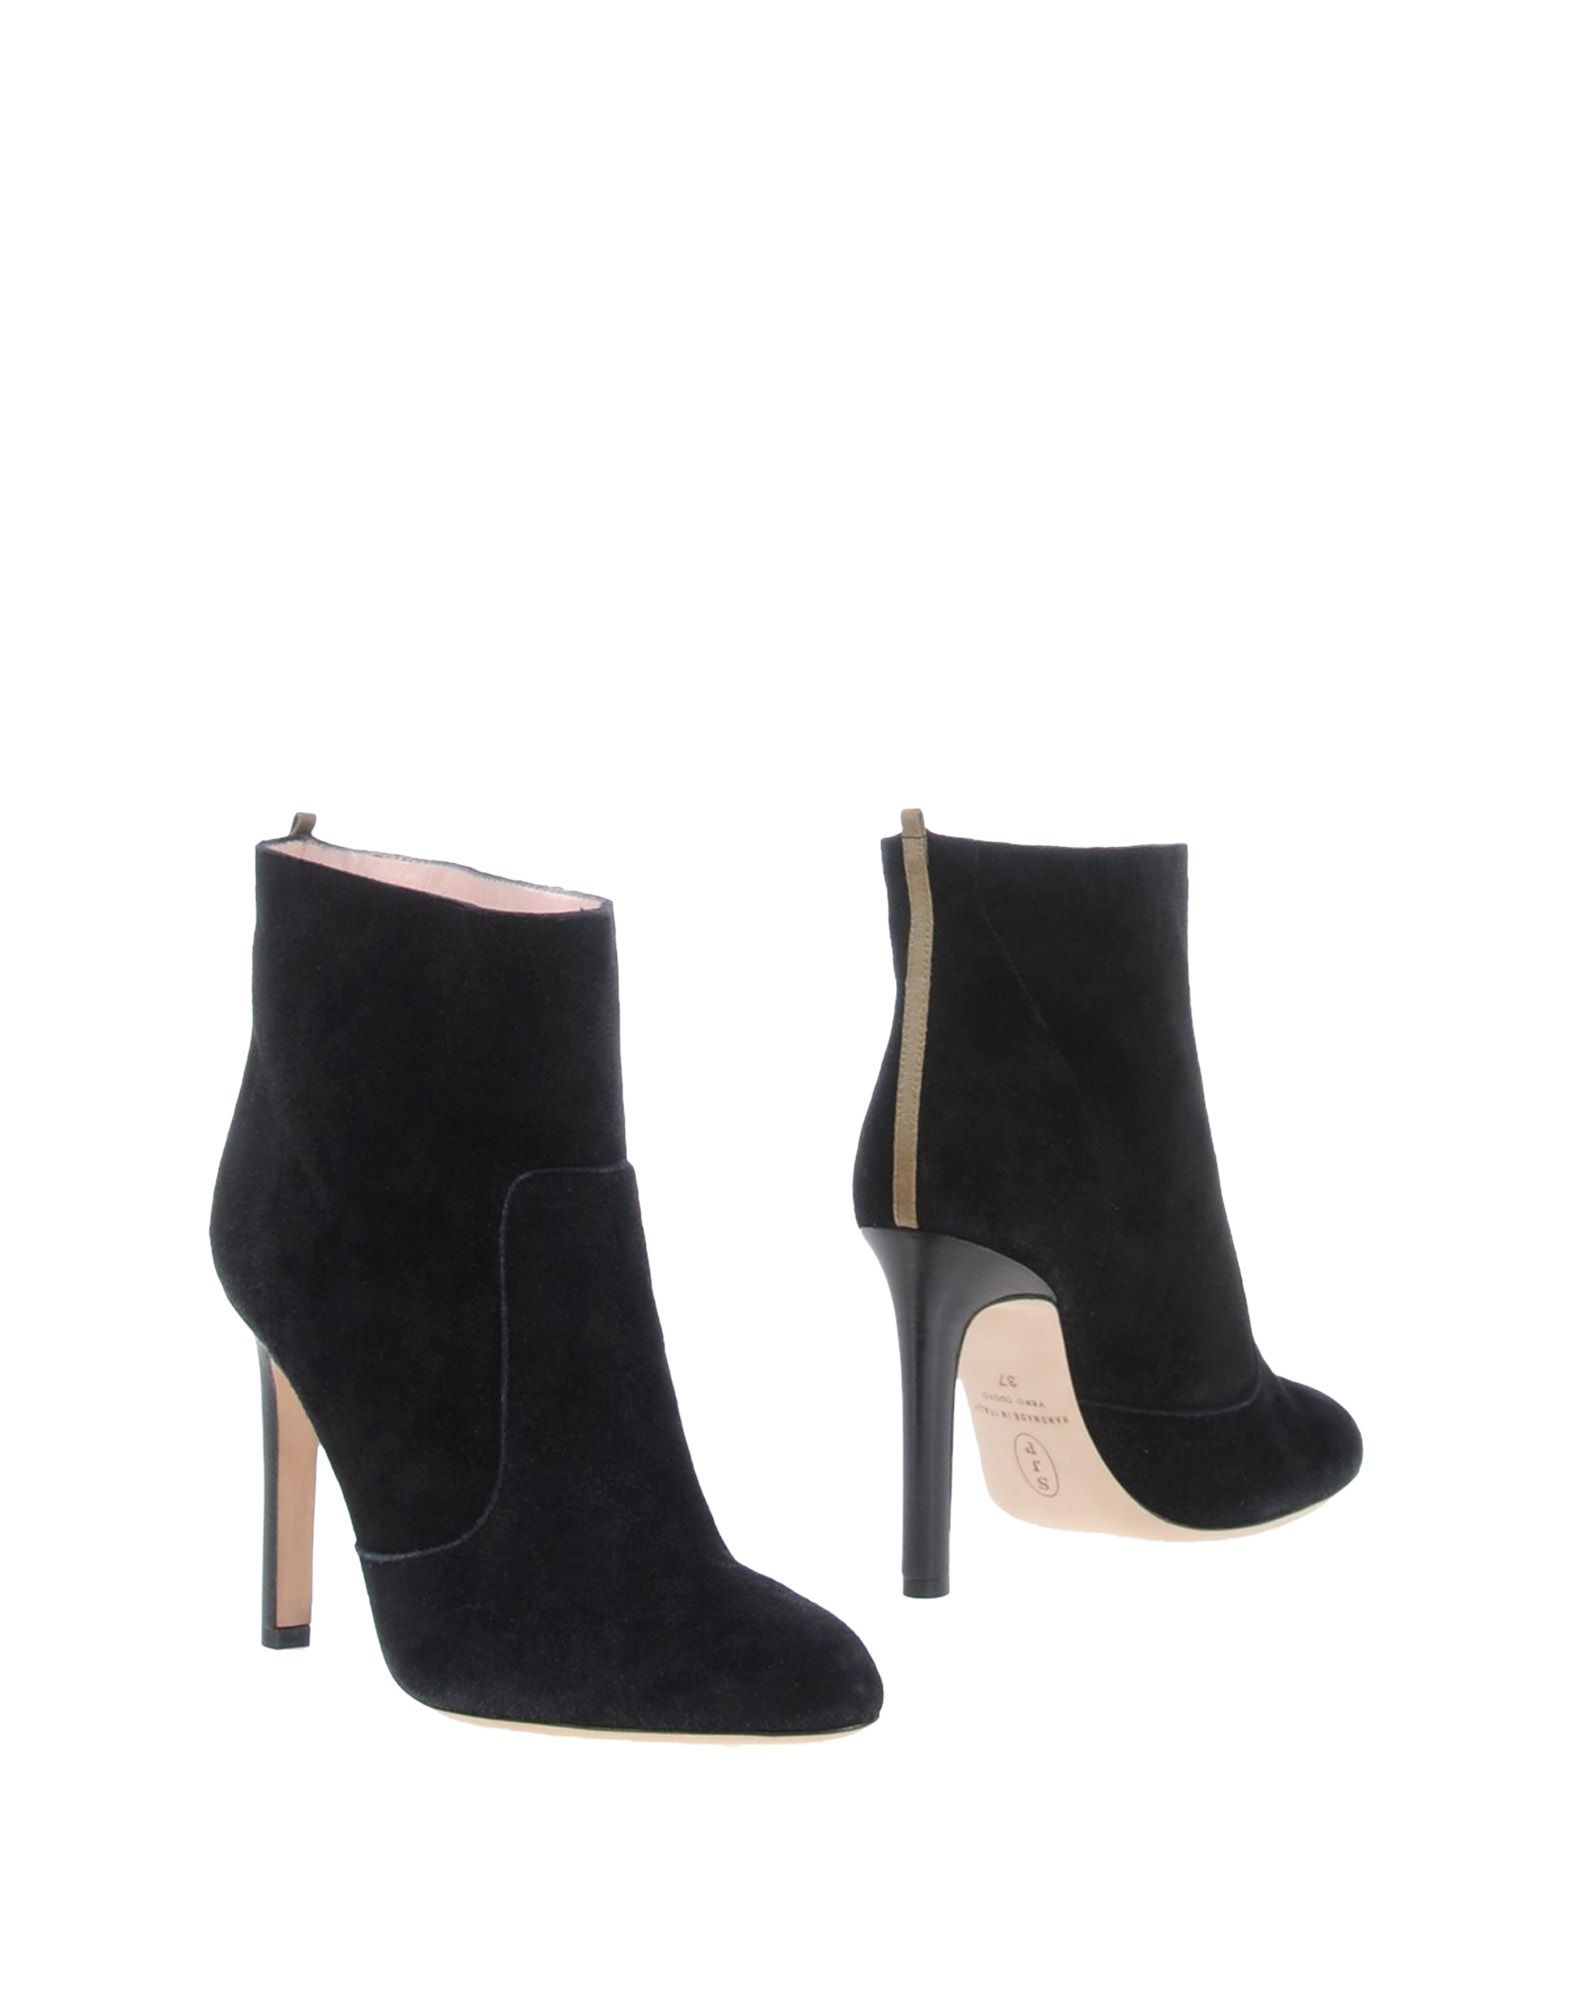 Bottine Sjp By Sarah Jessica Parker Femme - Bottines Sjp By Sarah Jessica Parker sur